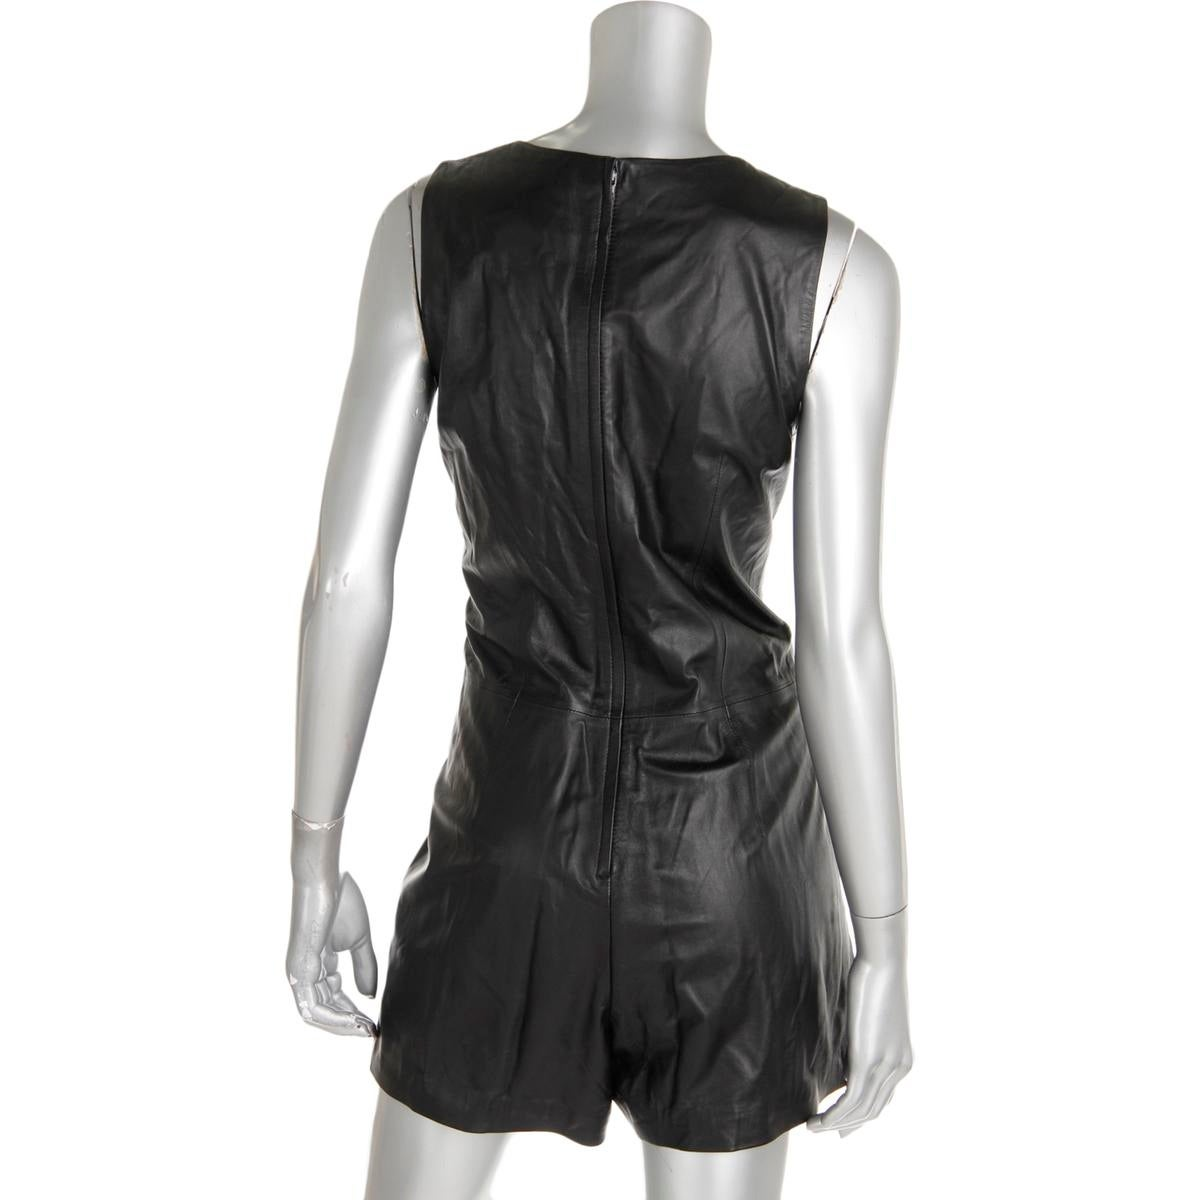 8a1d6a411ff Shop Polo Ralph Lauren Womens Romper Lamb Leather Lined - 6 - Free Shipping  Today - Overstock - 19760650